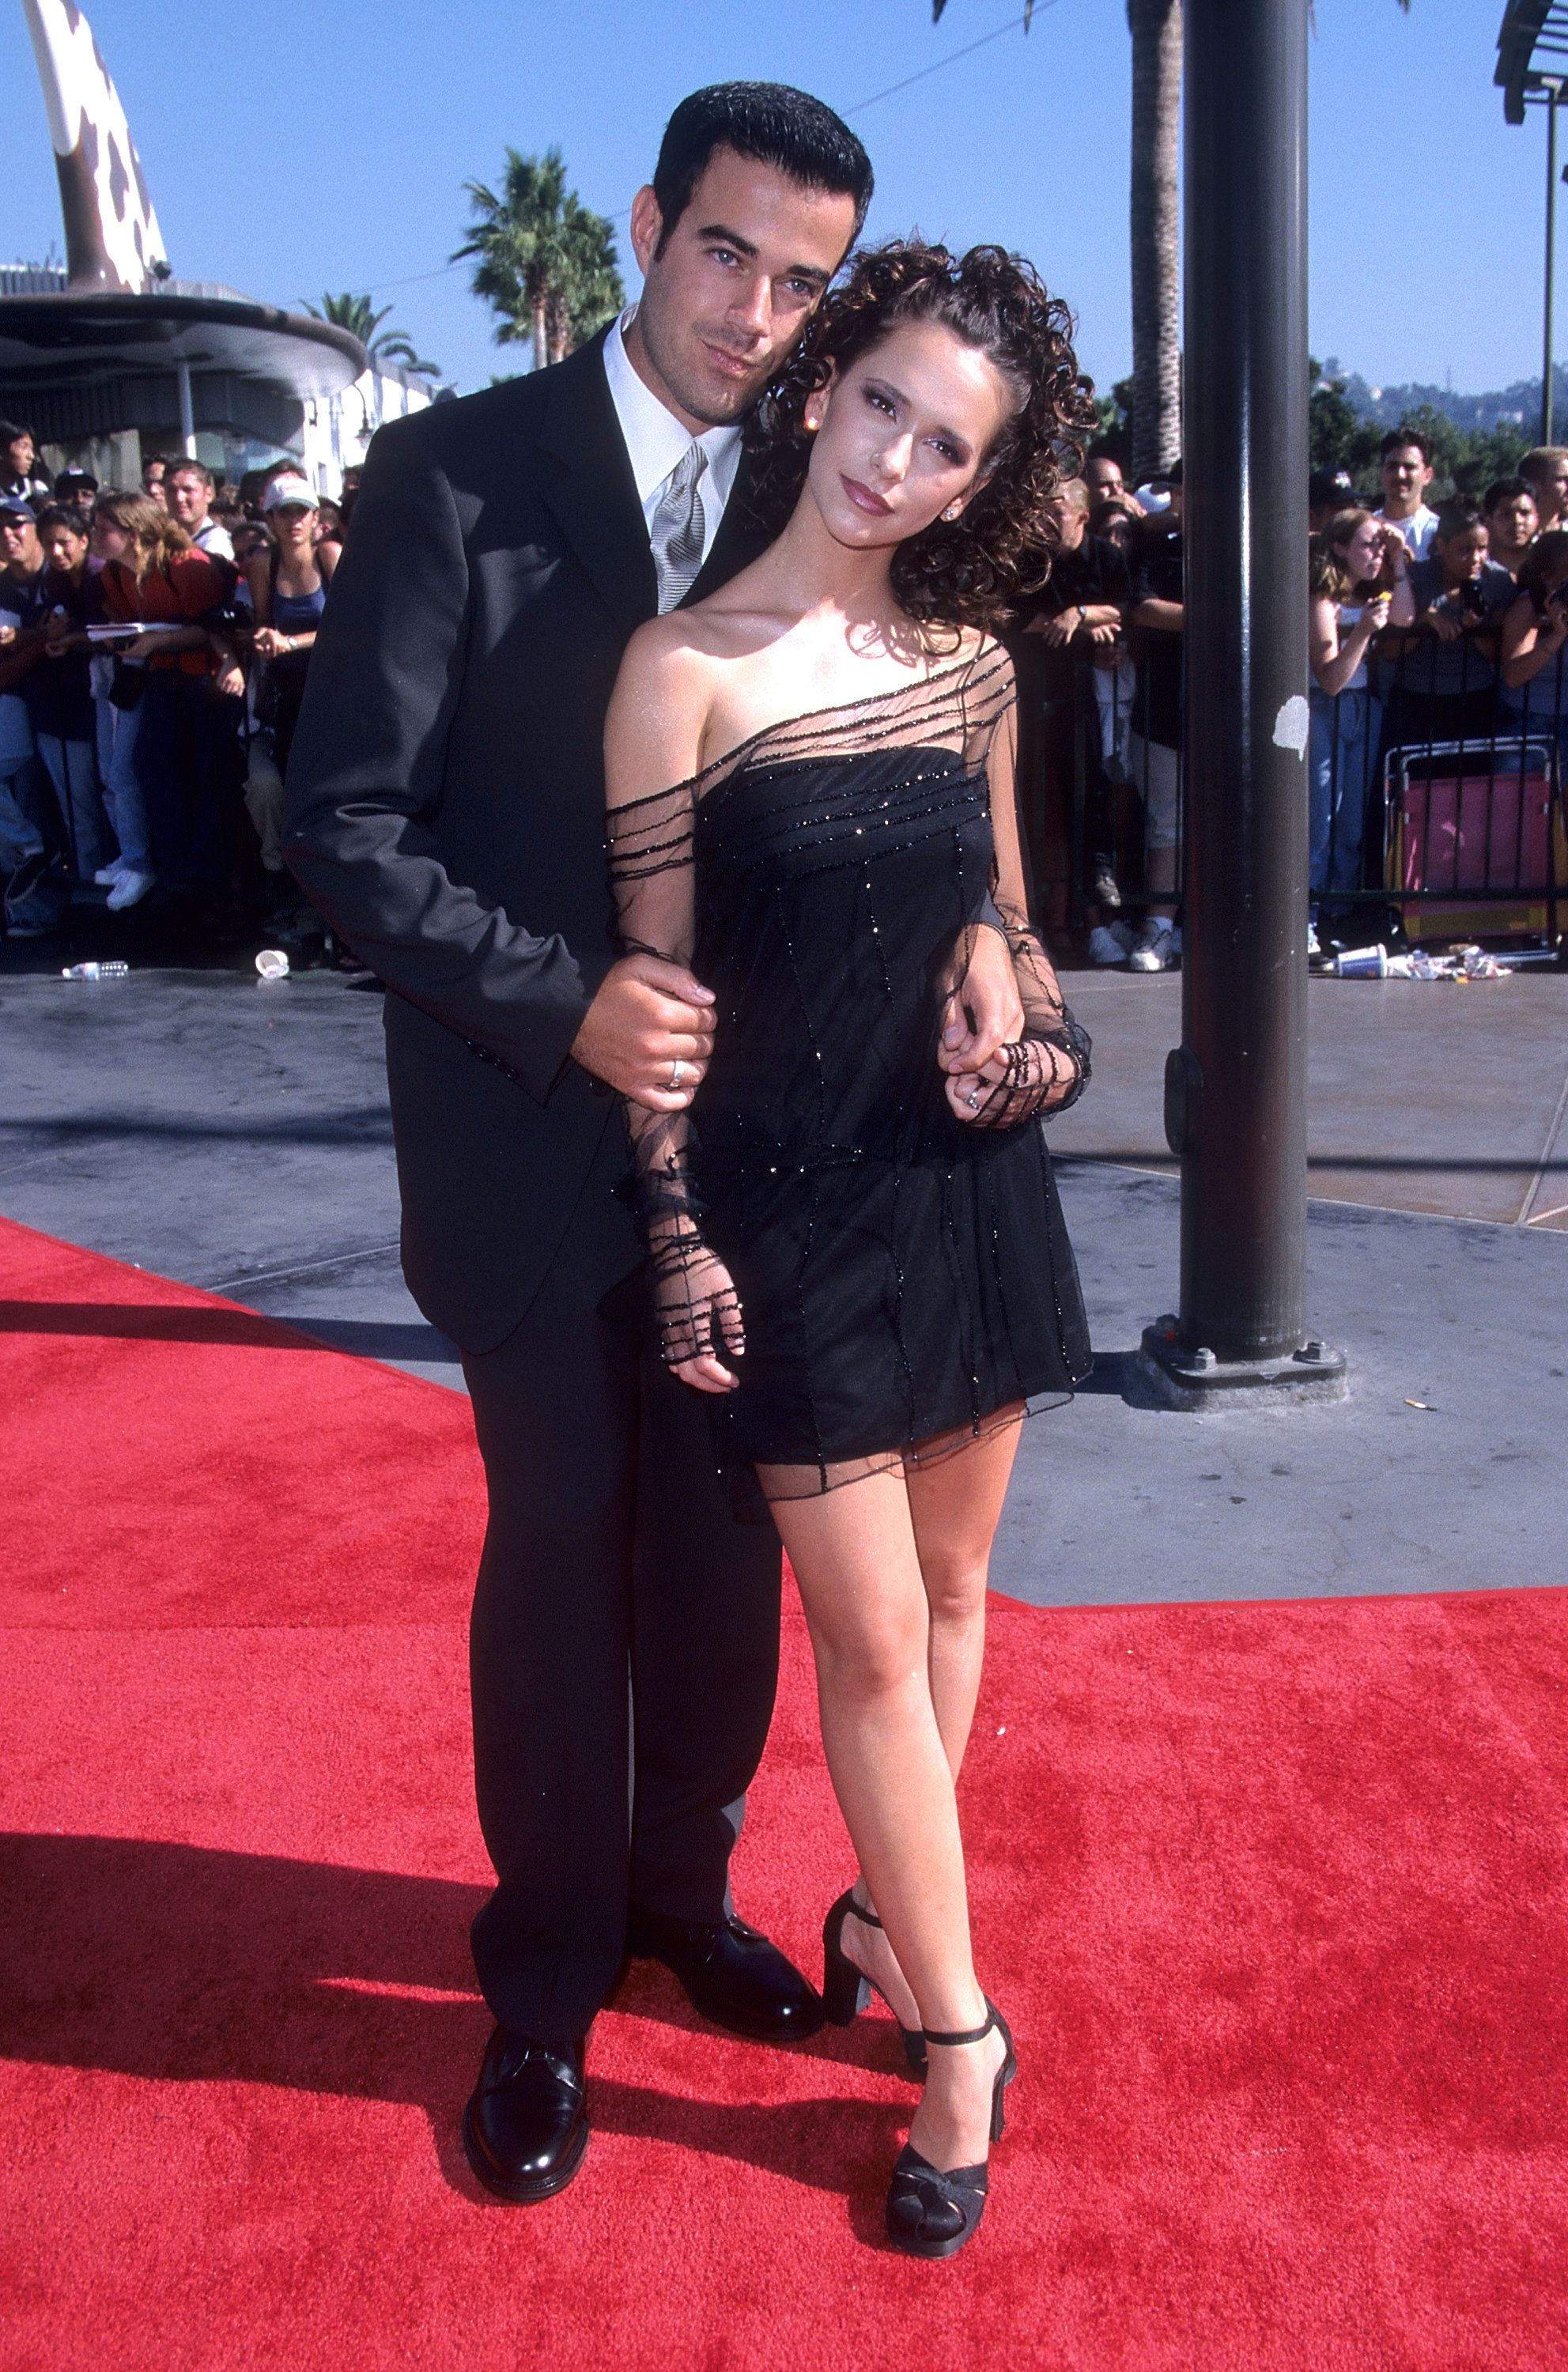 UNIVERSAL CITY, CA - SEPTEMBER 10:   MTV personality Carson Daly and actress Jennifer Love Hewitt attend the 15th Annual MTV Video Music Awards on September 10, 1998 at Universal Amphitheatre in Universal City, California. (Photo by Ron Galella, Ltd./WireImage)